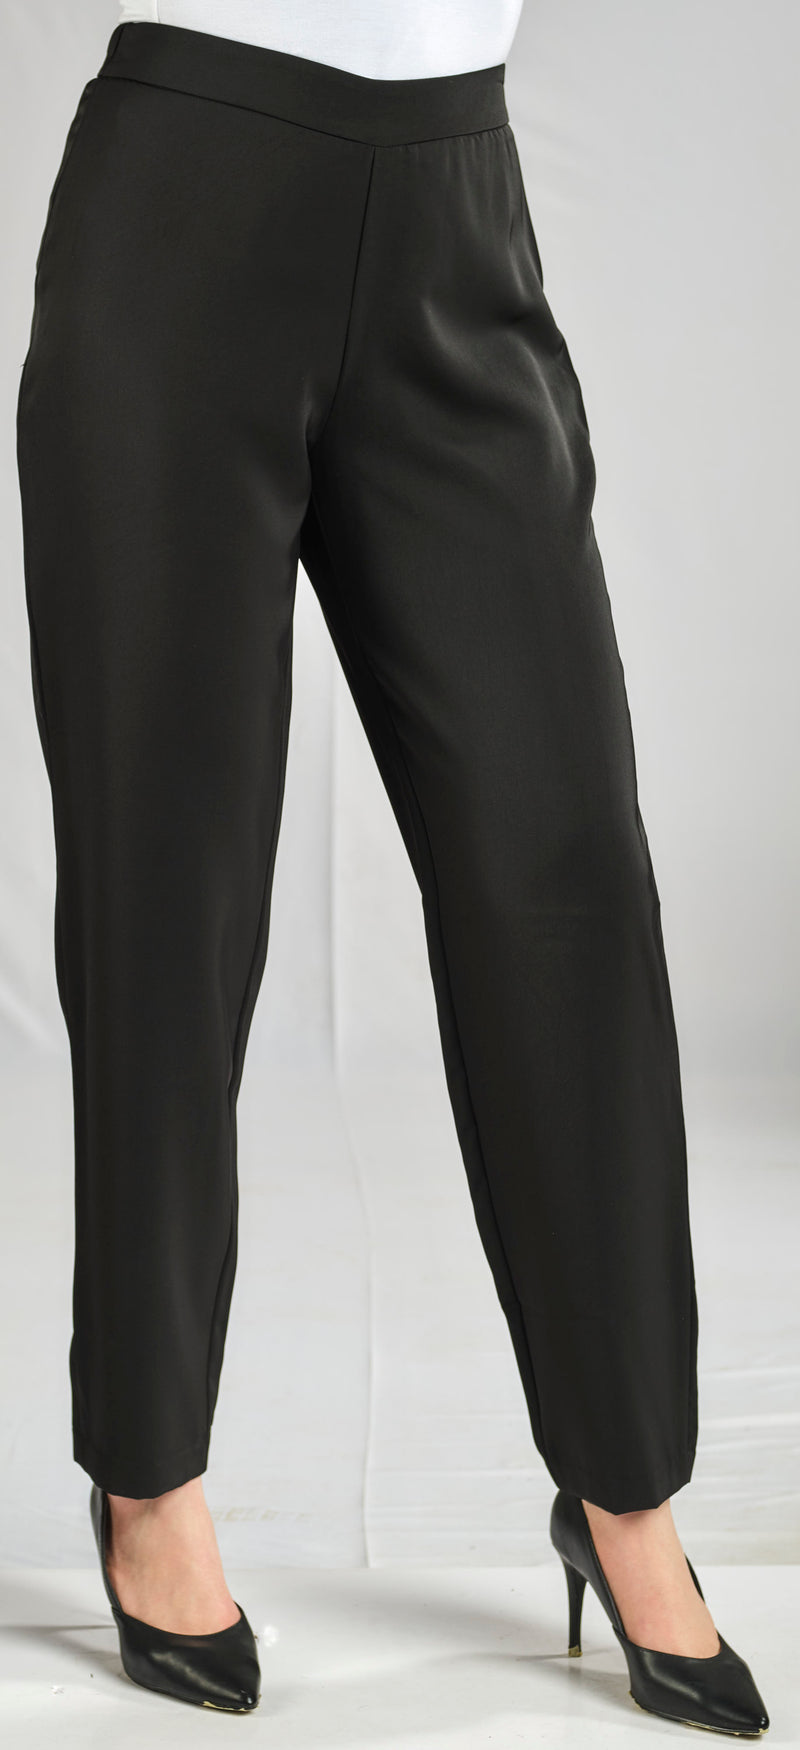 BLACK TAILLURE PANTS WITH ELASTIC WAIST FOR EXTRA COMFORT